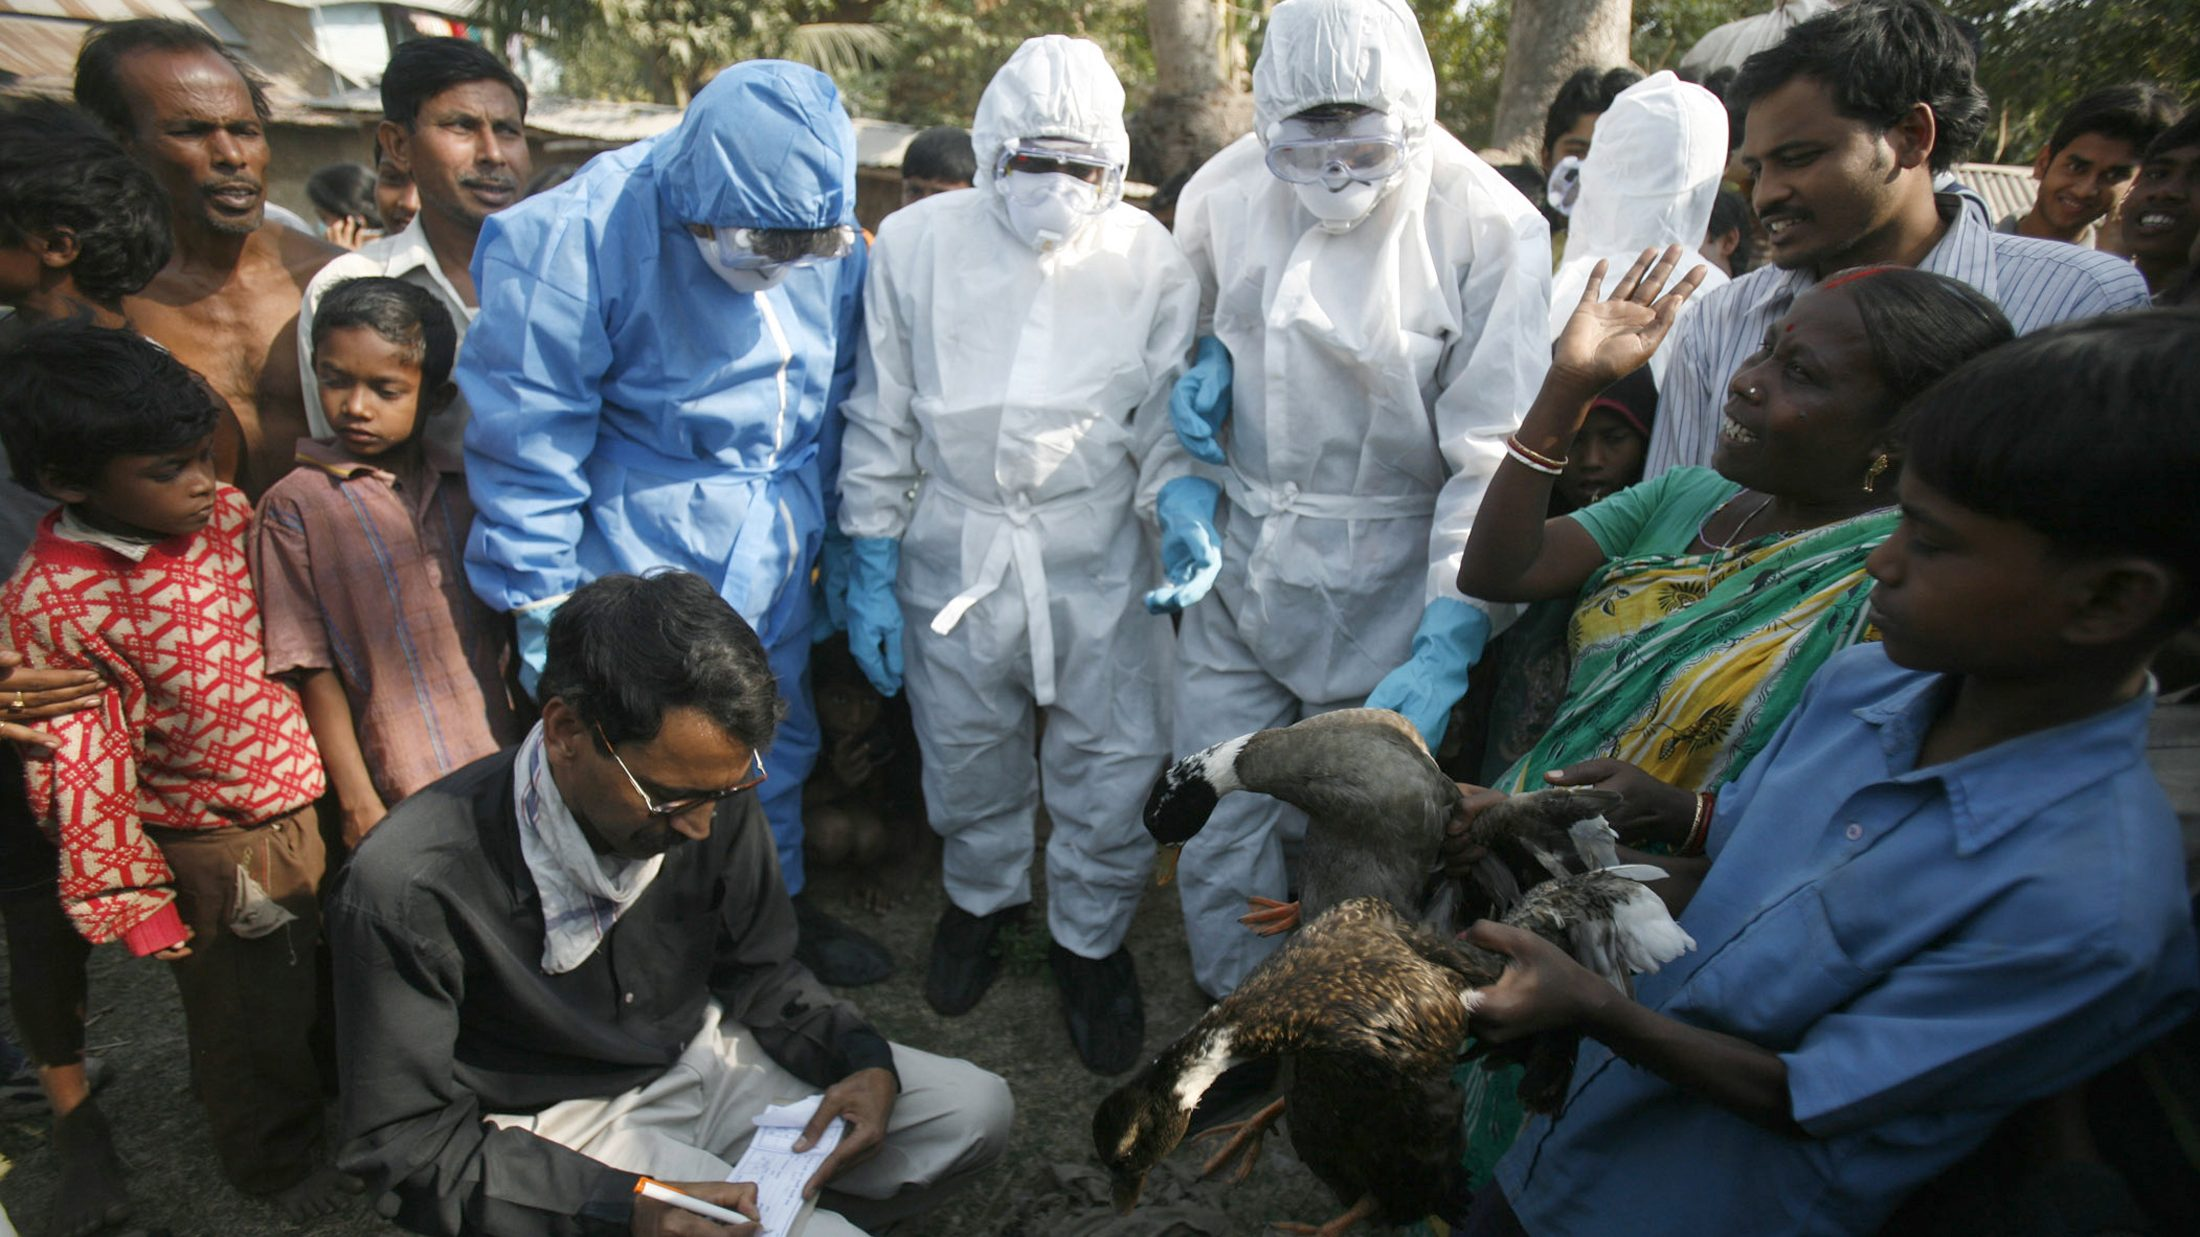 Indian teachers also work on bird flu and Covid-19 response